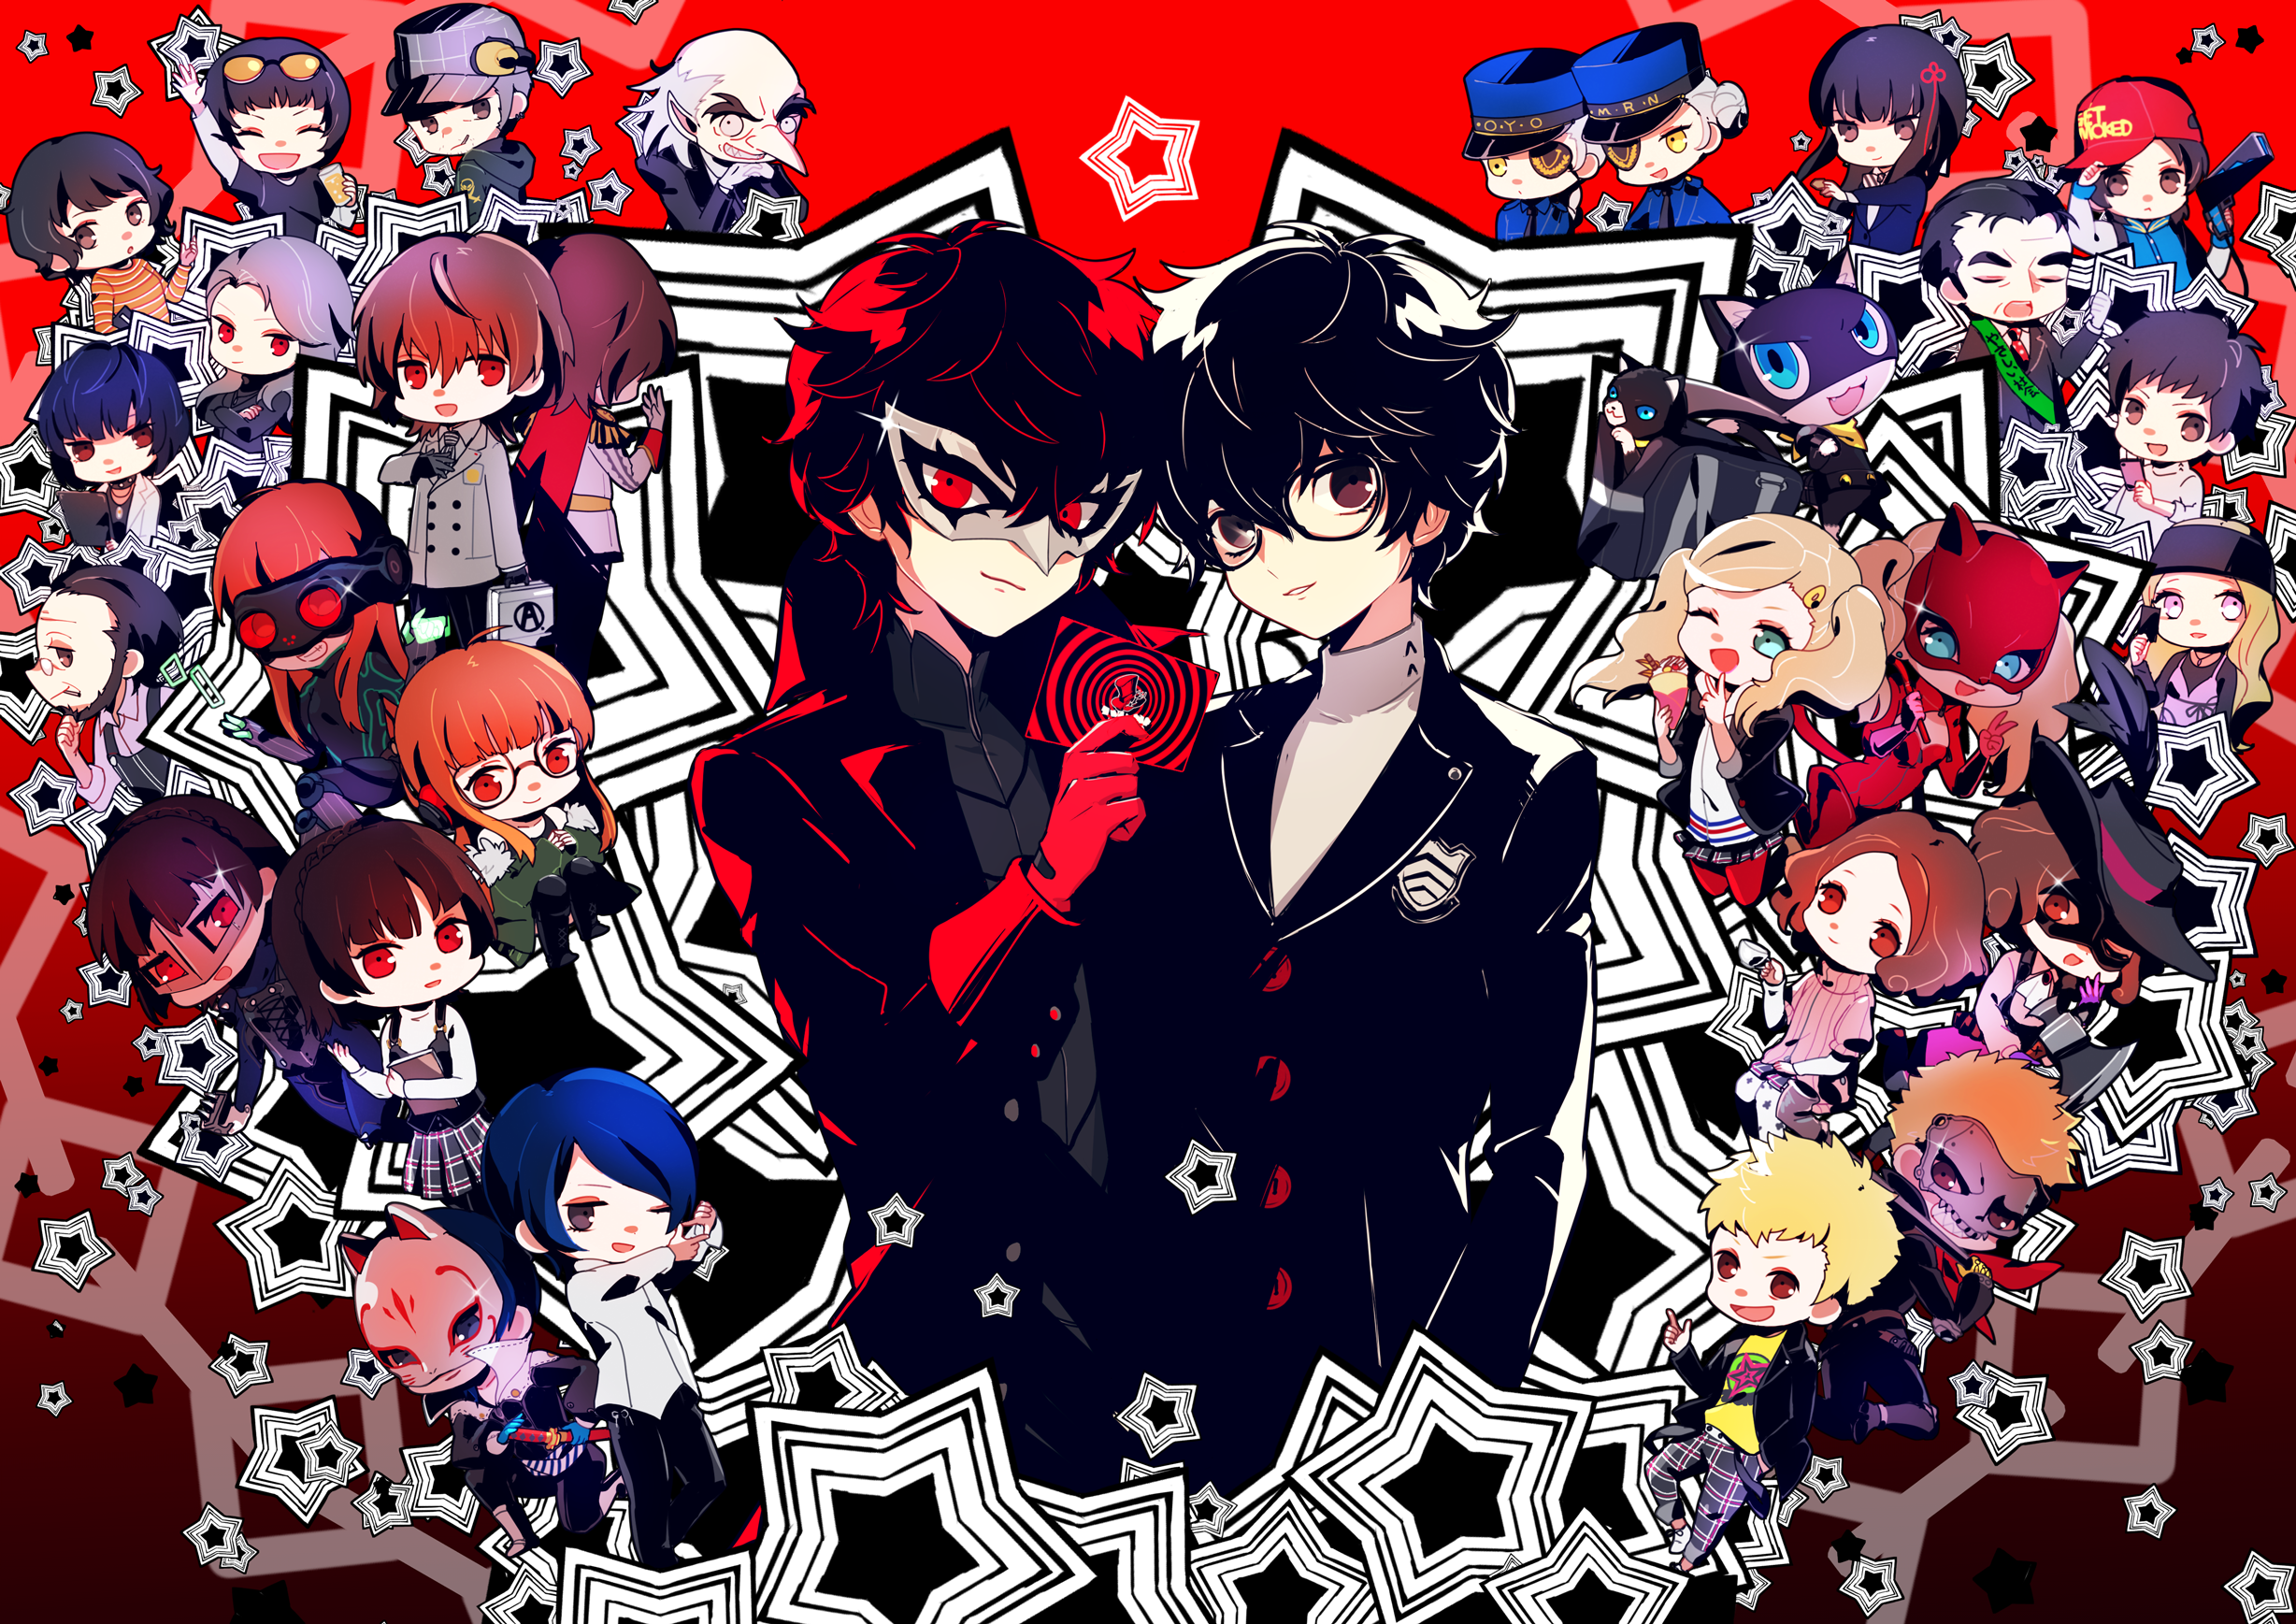 Persona 5 Royal Wallpapers Top Free Persona 5 Royal Backgrounds